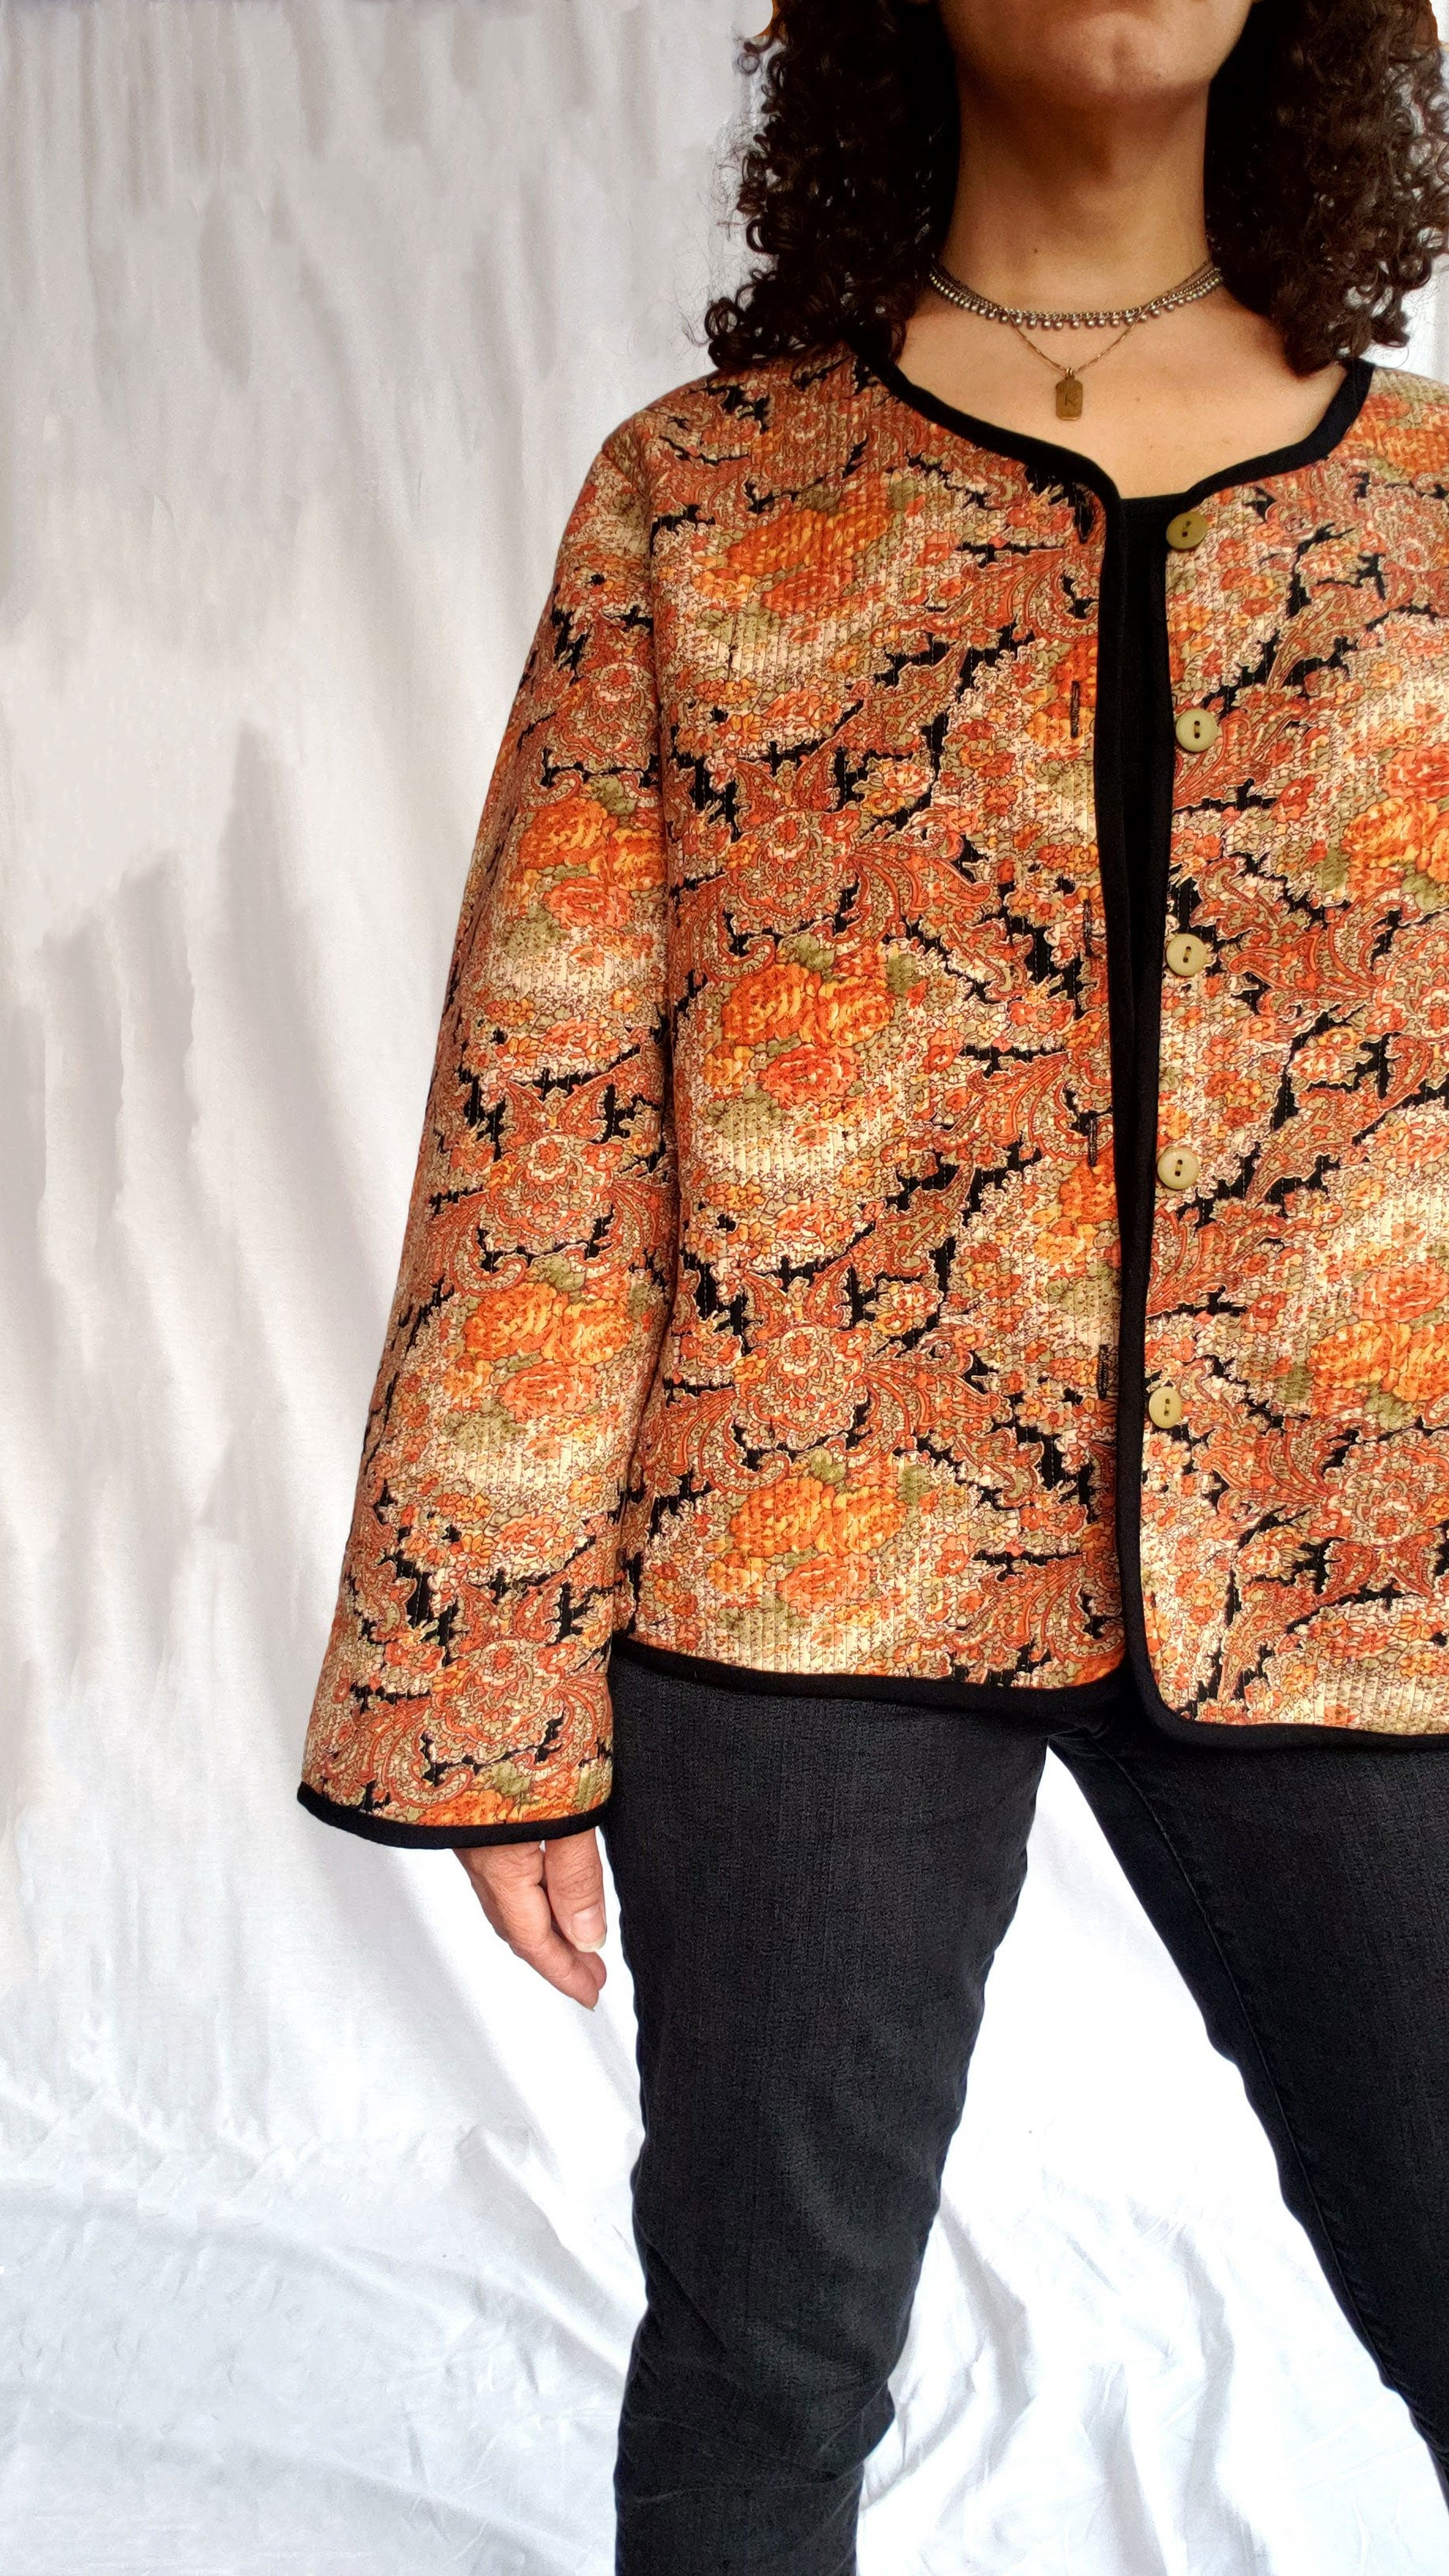 April Cornell Vintage Quilted Paisley Print Jacket